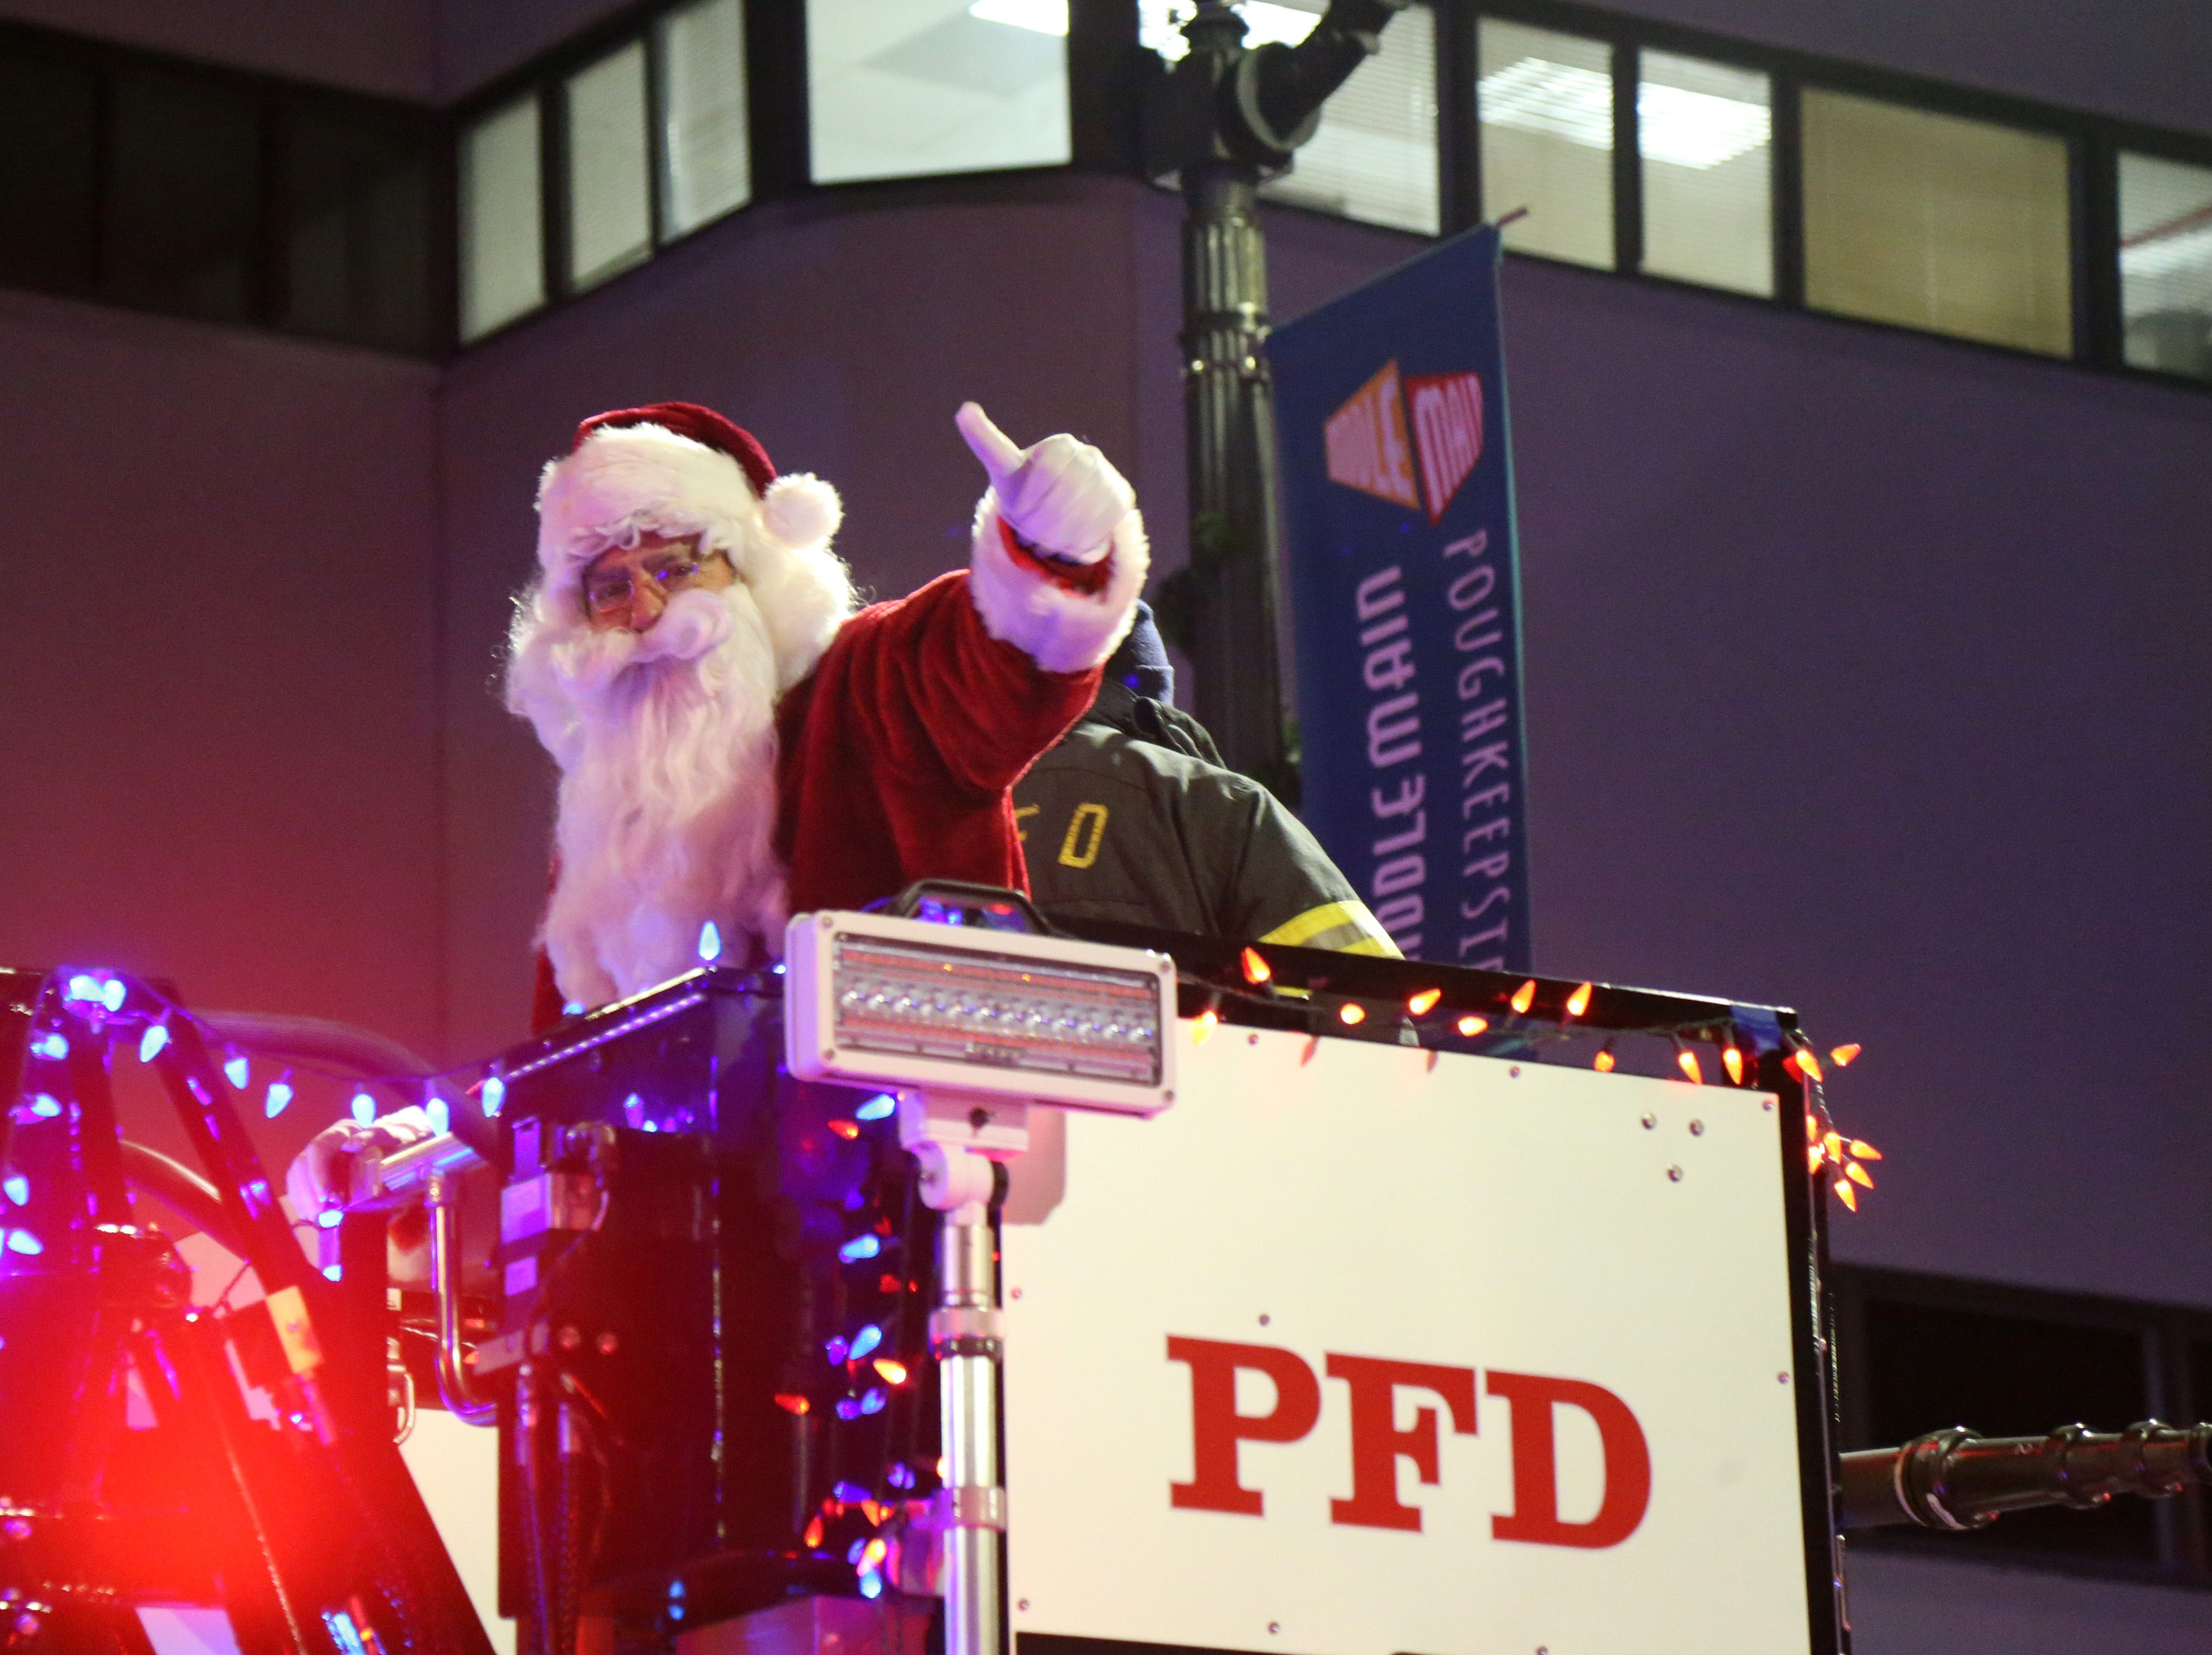 Santa Claus rides on a City of Poughkeepsie fire truck during the Celebration of Lights in the City of Poughkeepsie on November 30, 2018.